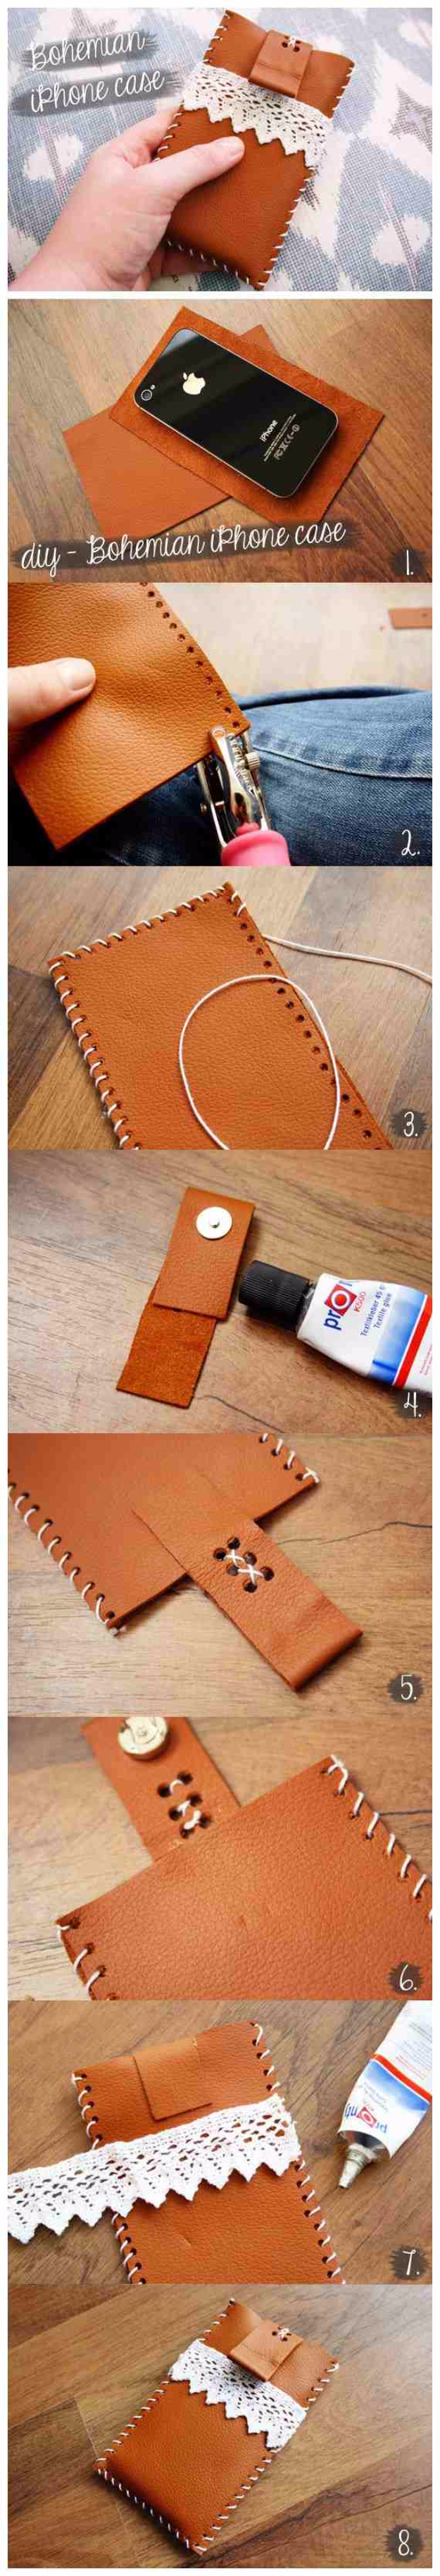 Best DIY Gifts for Girls - Bohemian Style Iphone Case - Cute Crafts and DIY Projects that Make Cool DYI Gift Ideas for Young and Older Girls, Teens and Teenagers - Awesome Room and Home Decor for Bedroom, Fashion, Jewelry and Hair Accessories - Cheap Craft Projects To Make For a Girl for Christmas Presents http://diyjoy.com/diy-gifts-for-girls